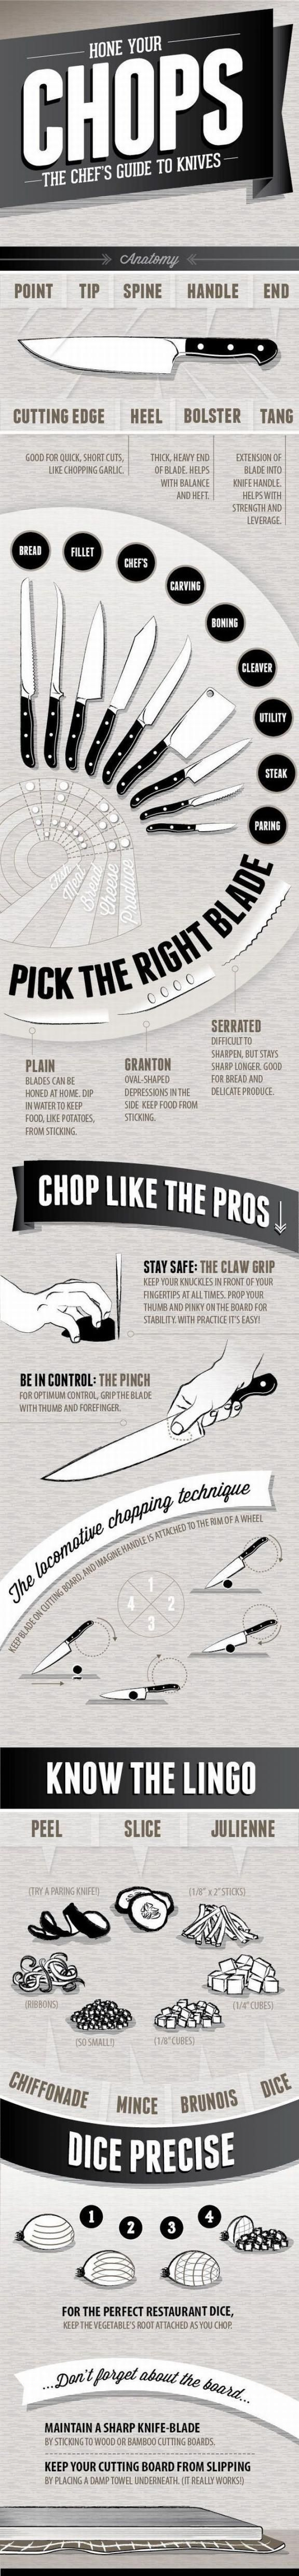 Know your knives! #culinary #arts #school